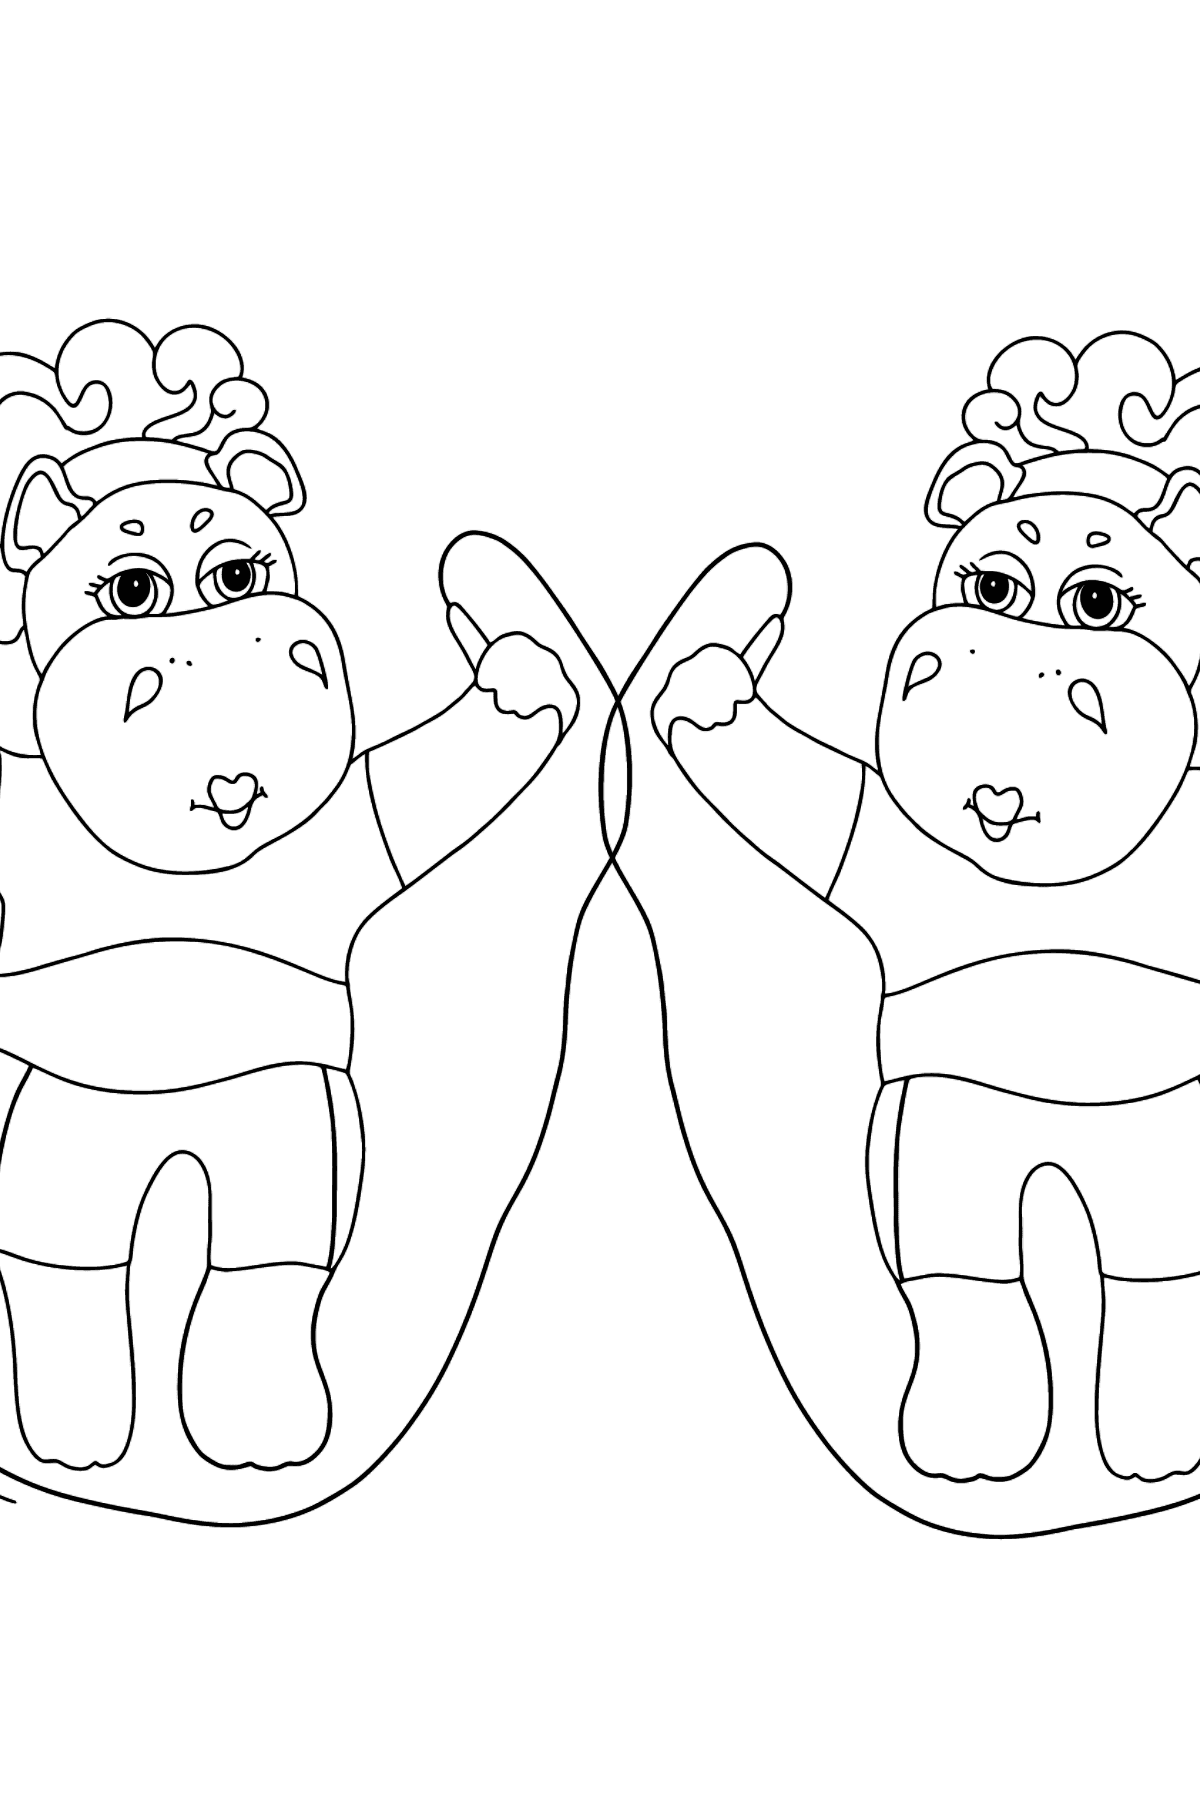 Coloring Page - Hippos are Exercising with Jump Ropes - Coloring Pages for Kids